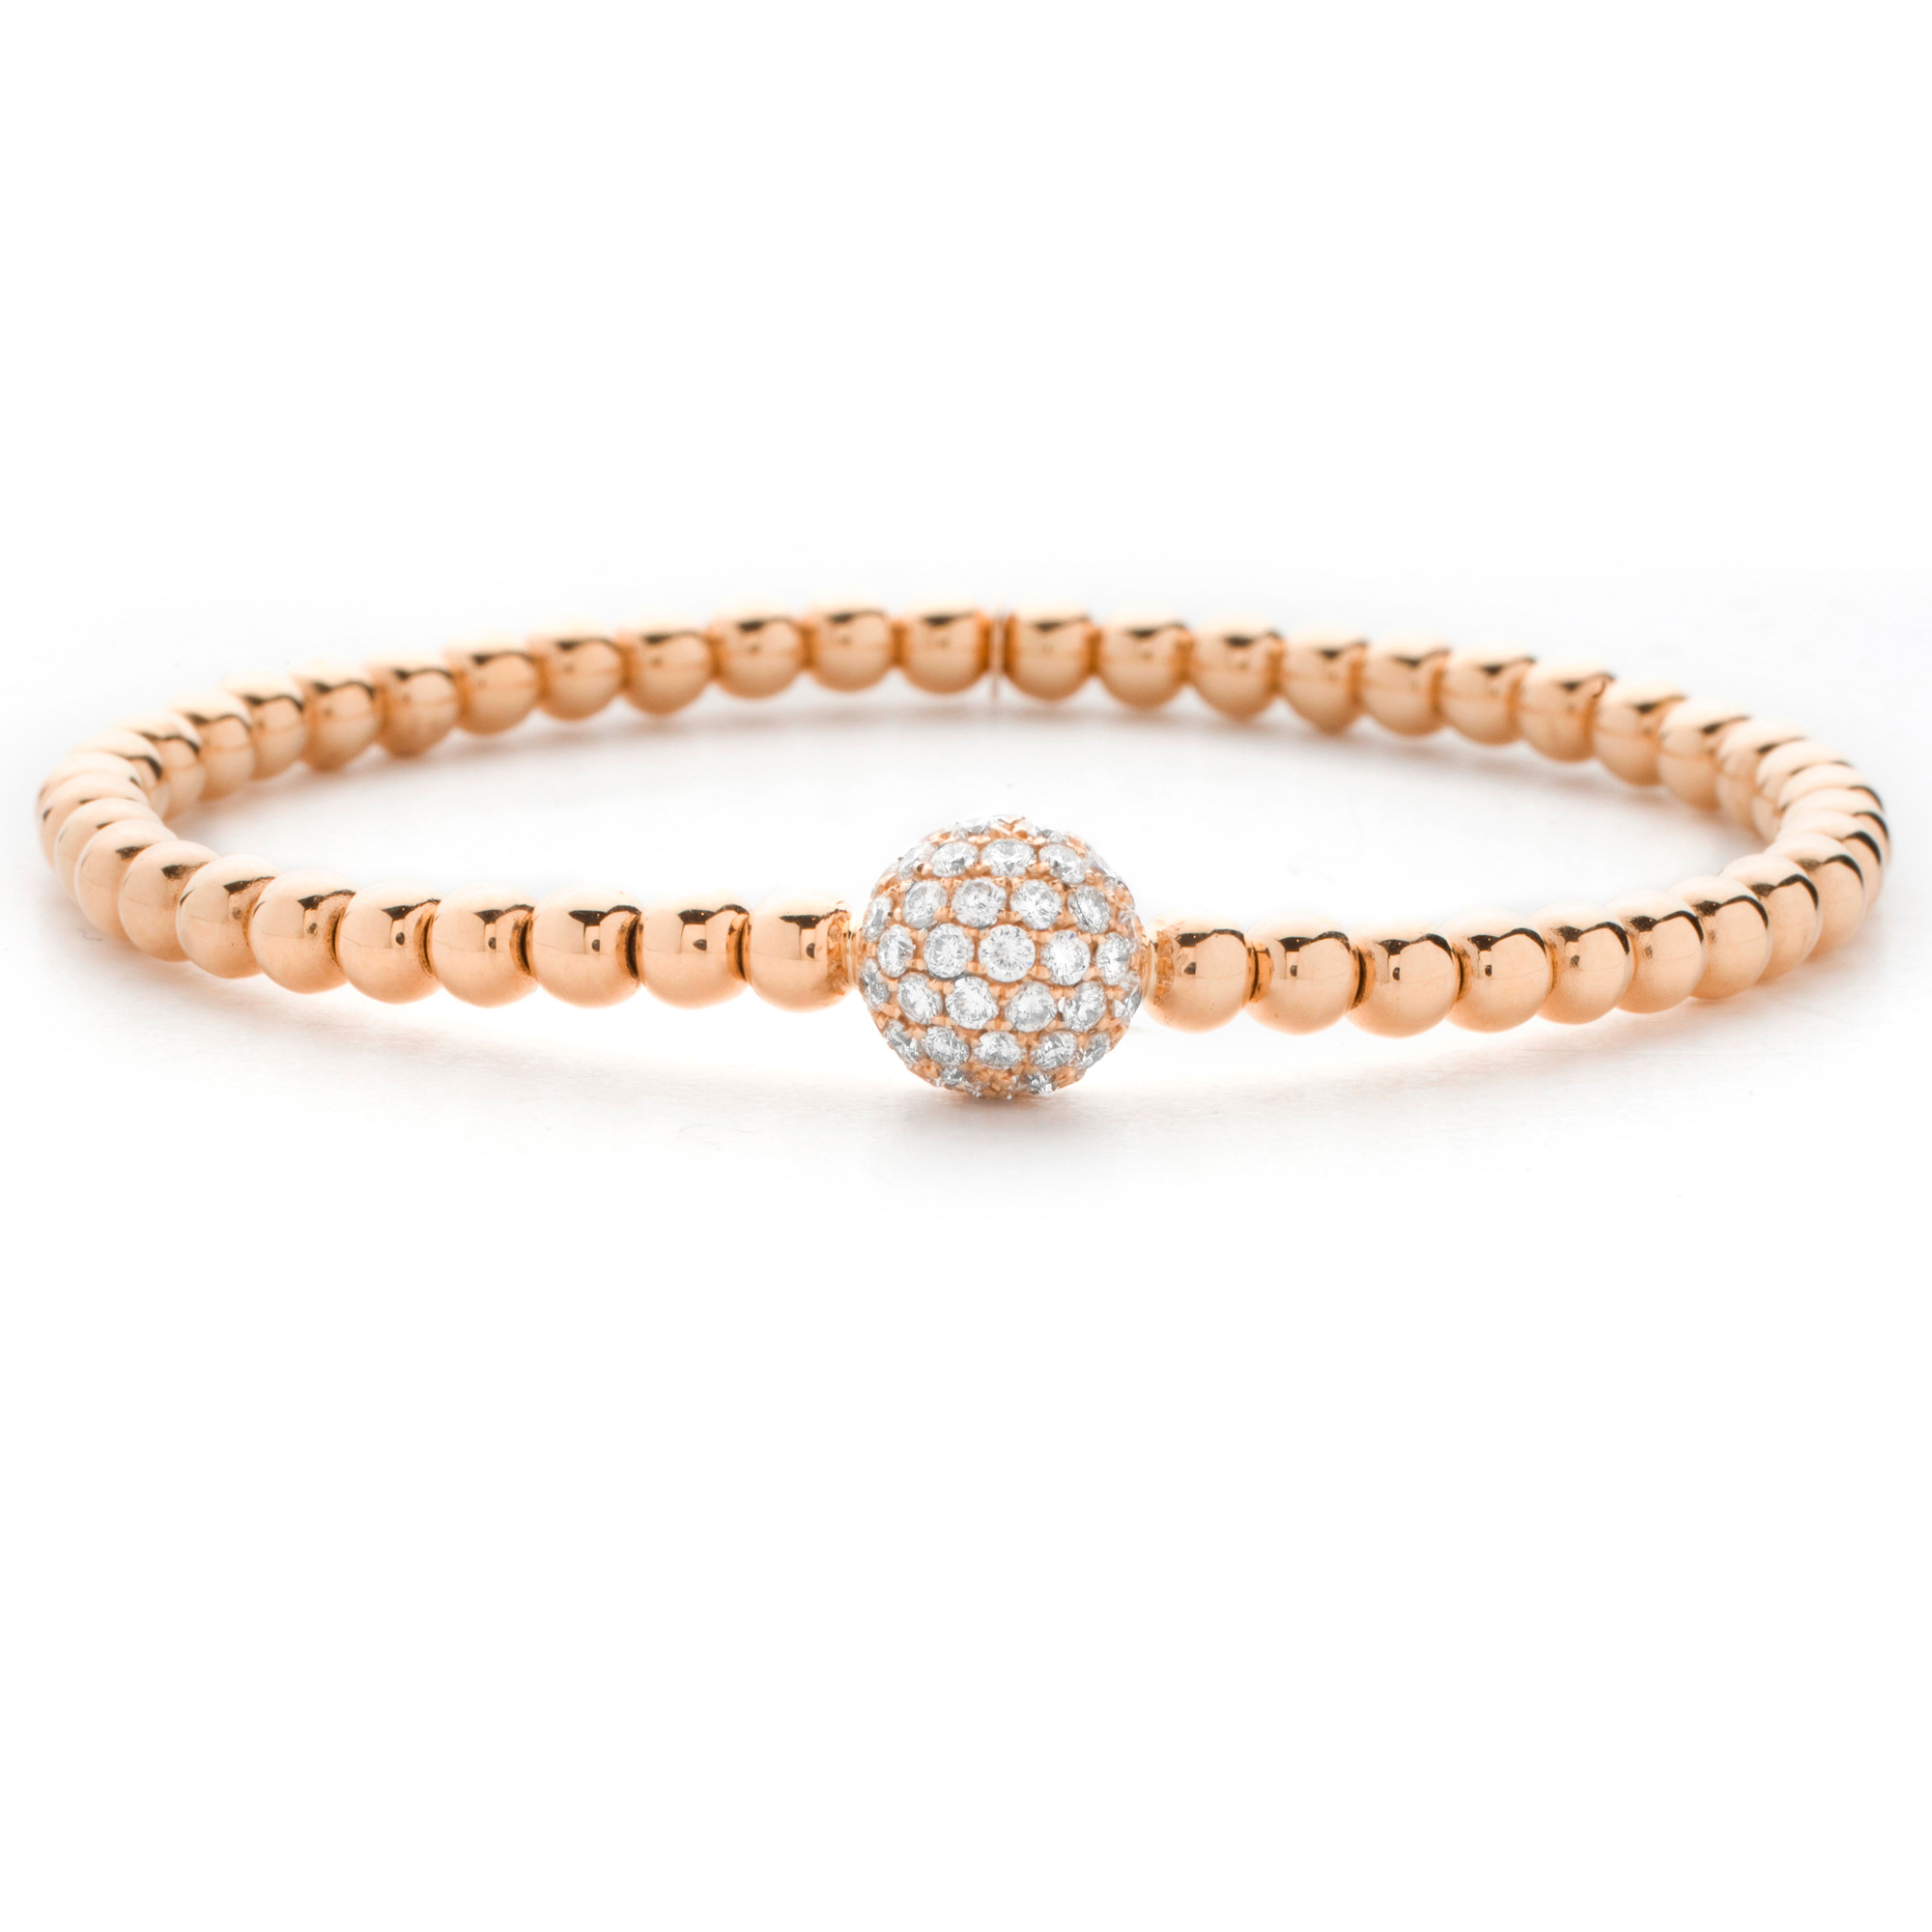 Hulchi Belluni 18K Rose Gold Stretch Stackable Bracelet with Large Pave Diamond Ball Station